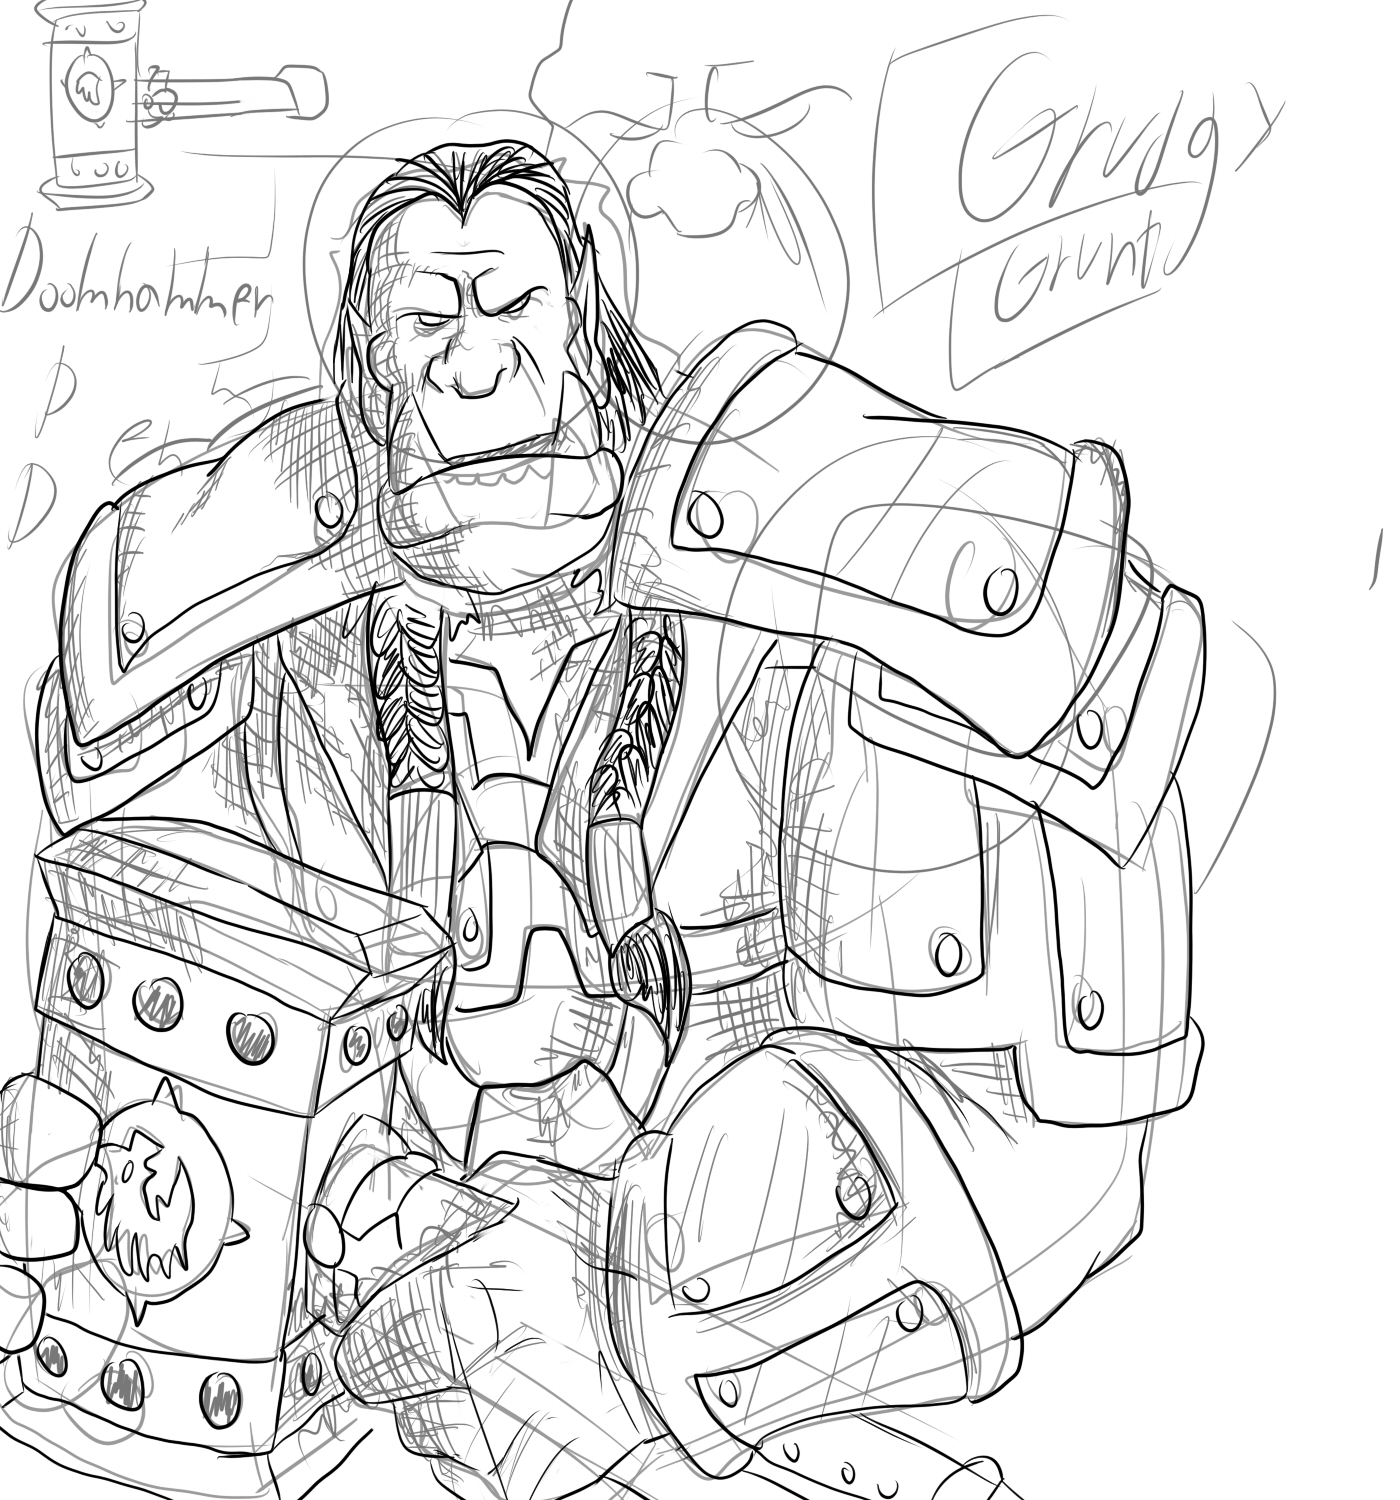 Early Thrall